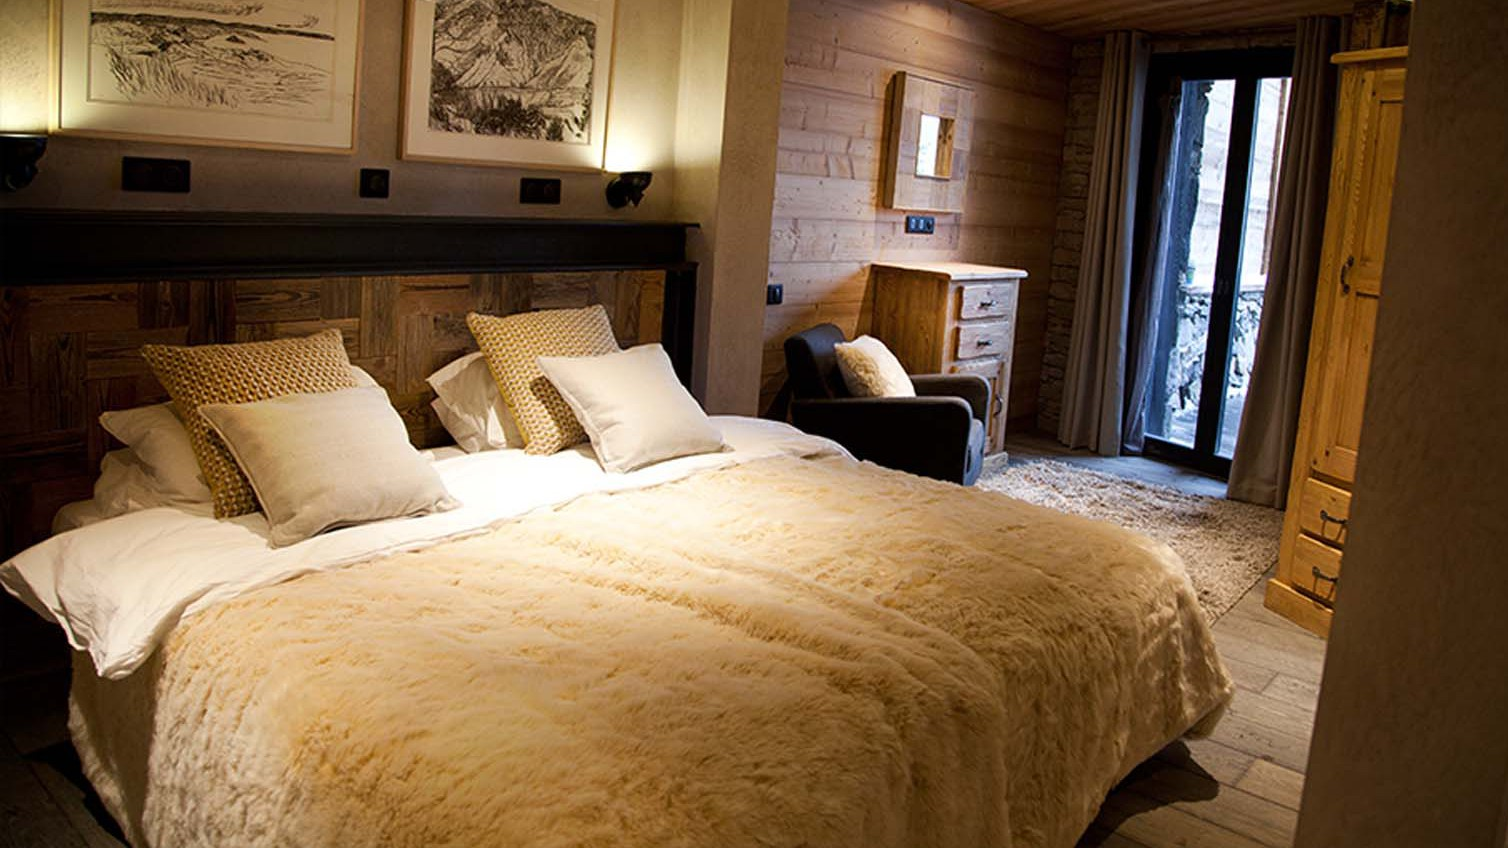 King sized double bed, Chalet Benjamin, Courchevel, France